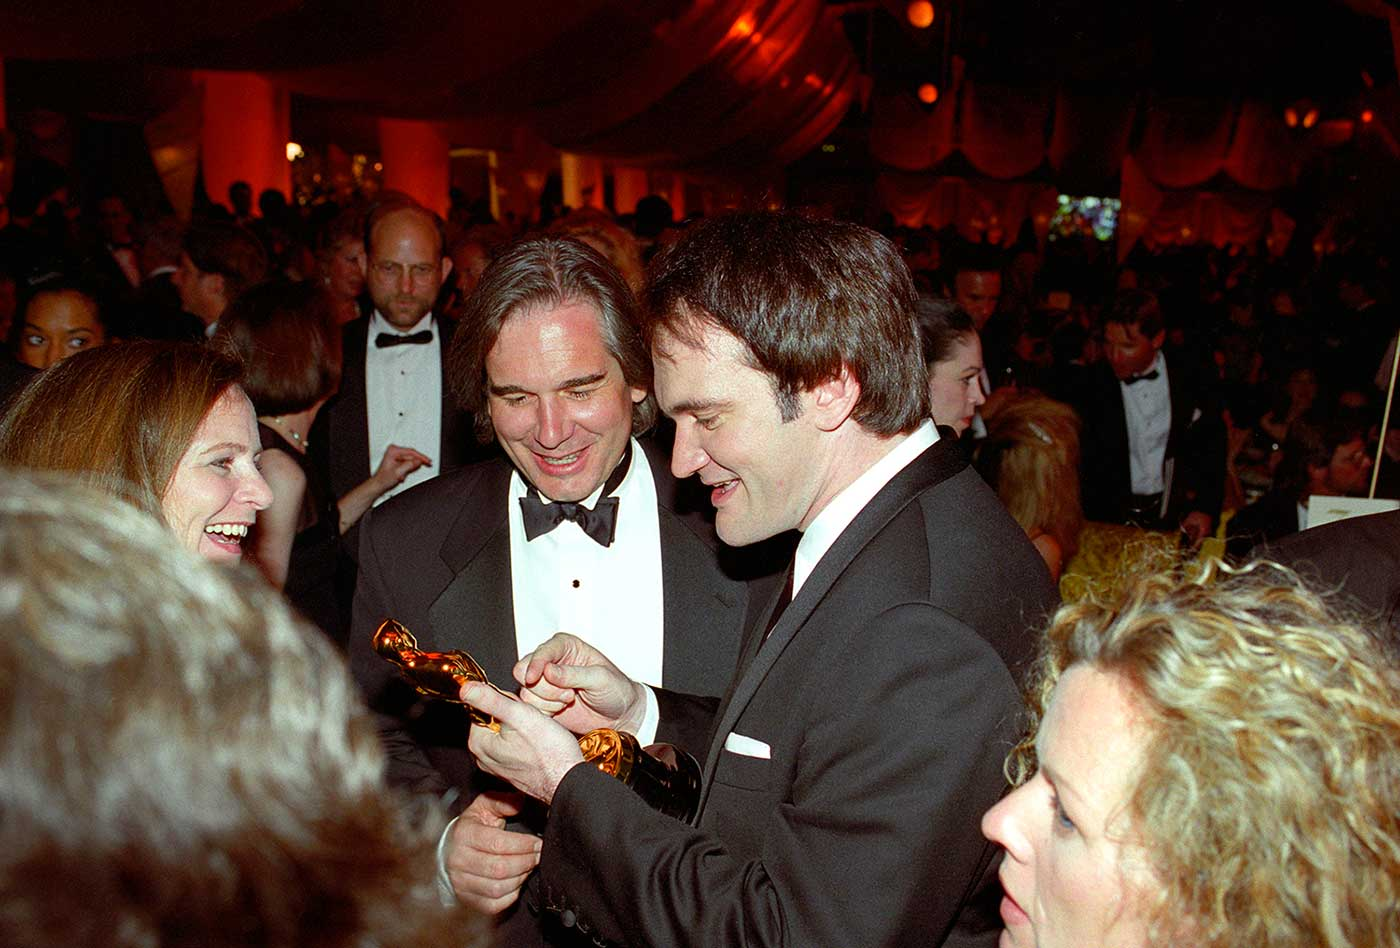 Quentin Tarantino checks out his PULP FICTION Oscar for Original Screenplay at the Governors Awards following the Oscars in 1996. He won again in the same category for DJANGO UNCHAINED in 2013.